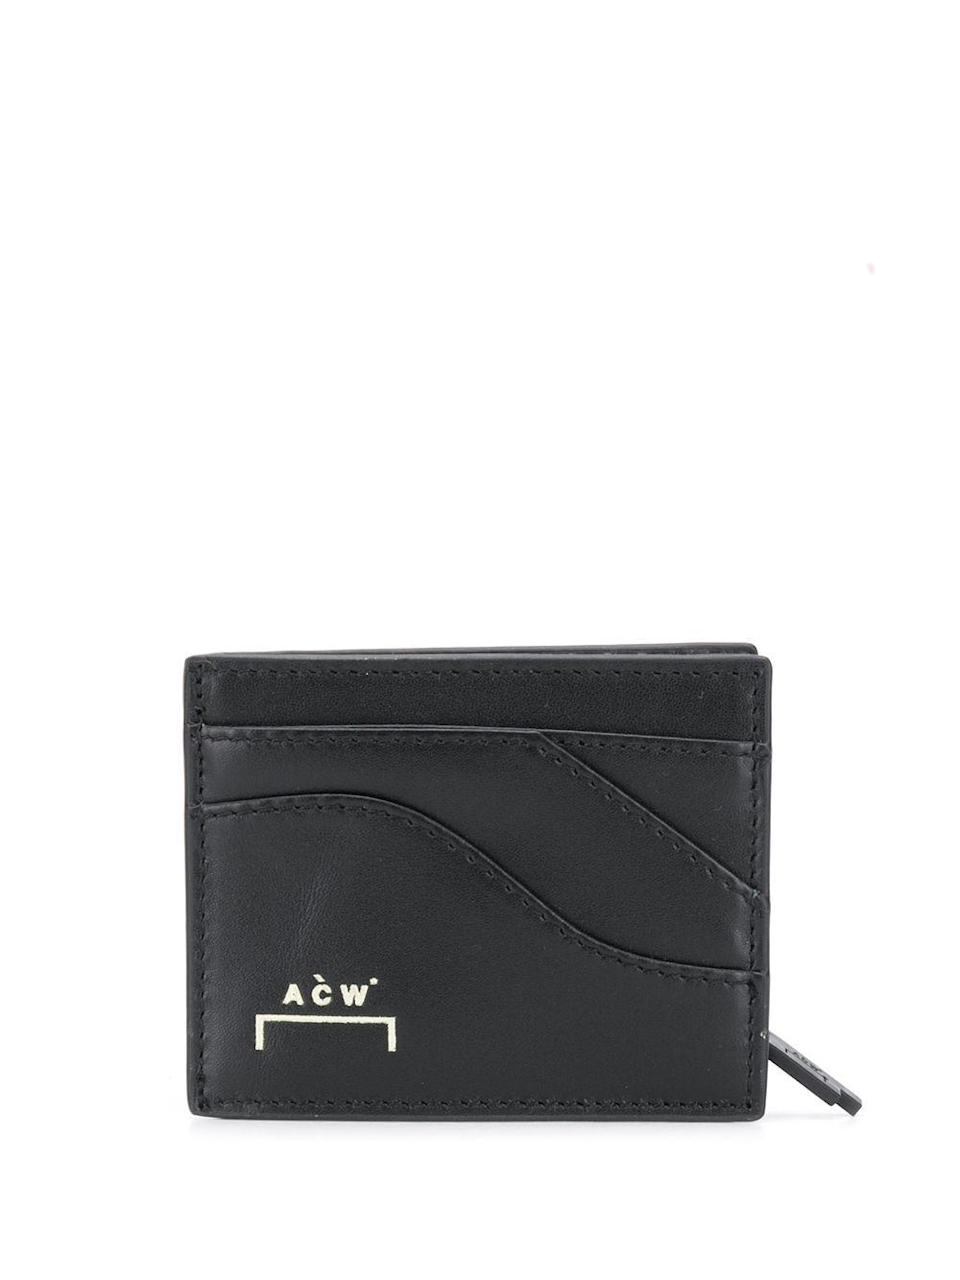 """<p><strong>A-COLD-WALL*</strong></p><p>farfetch.com</p><p><strong>$167.00</strong></p><p><a href=""""https://go.redirectingat.com?id=74968X1596630&url=https%3A%2F%2Fwww.farfetch.com%2Fuk%2Fshopping%2Fmen%2Fa-cold-wall-logo-zipped-wallet-item-15606203.aspx&sref=https%3A%2F%2Fwww.esquire.com%2Fstyle%2Fmens-accessories%2Fg35924710%2Fmens-luxury-wallets%2F"""" rel=""""nofollow noopener"""" target=""""_blank"""" data-ylk=""""slk:Shop Now"""" class=""""link rapid-noclick-resp"""">Shop Now</a></p><p>Team A-Cold-Wall*'s penchant for architectural asymmetry takes this zip-around from sleek-but-standard to truly special.</p>"""